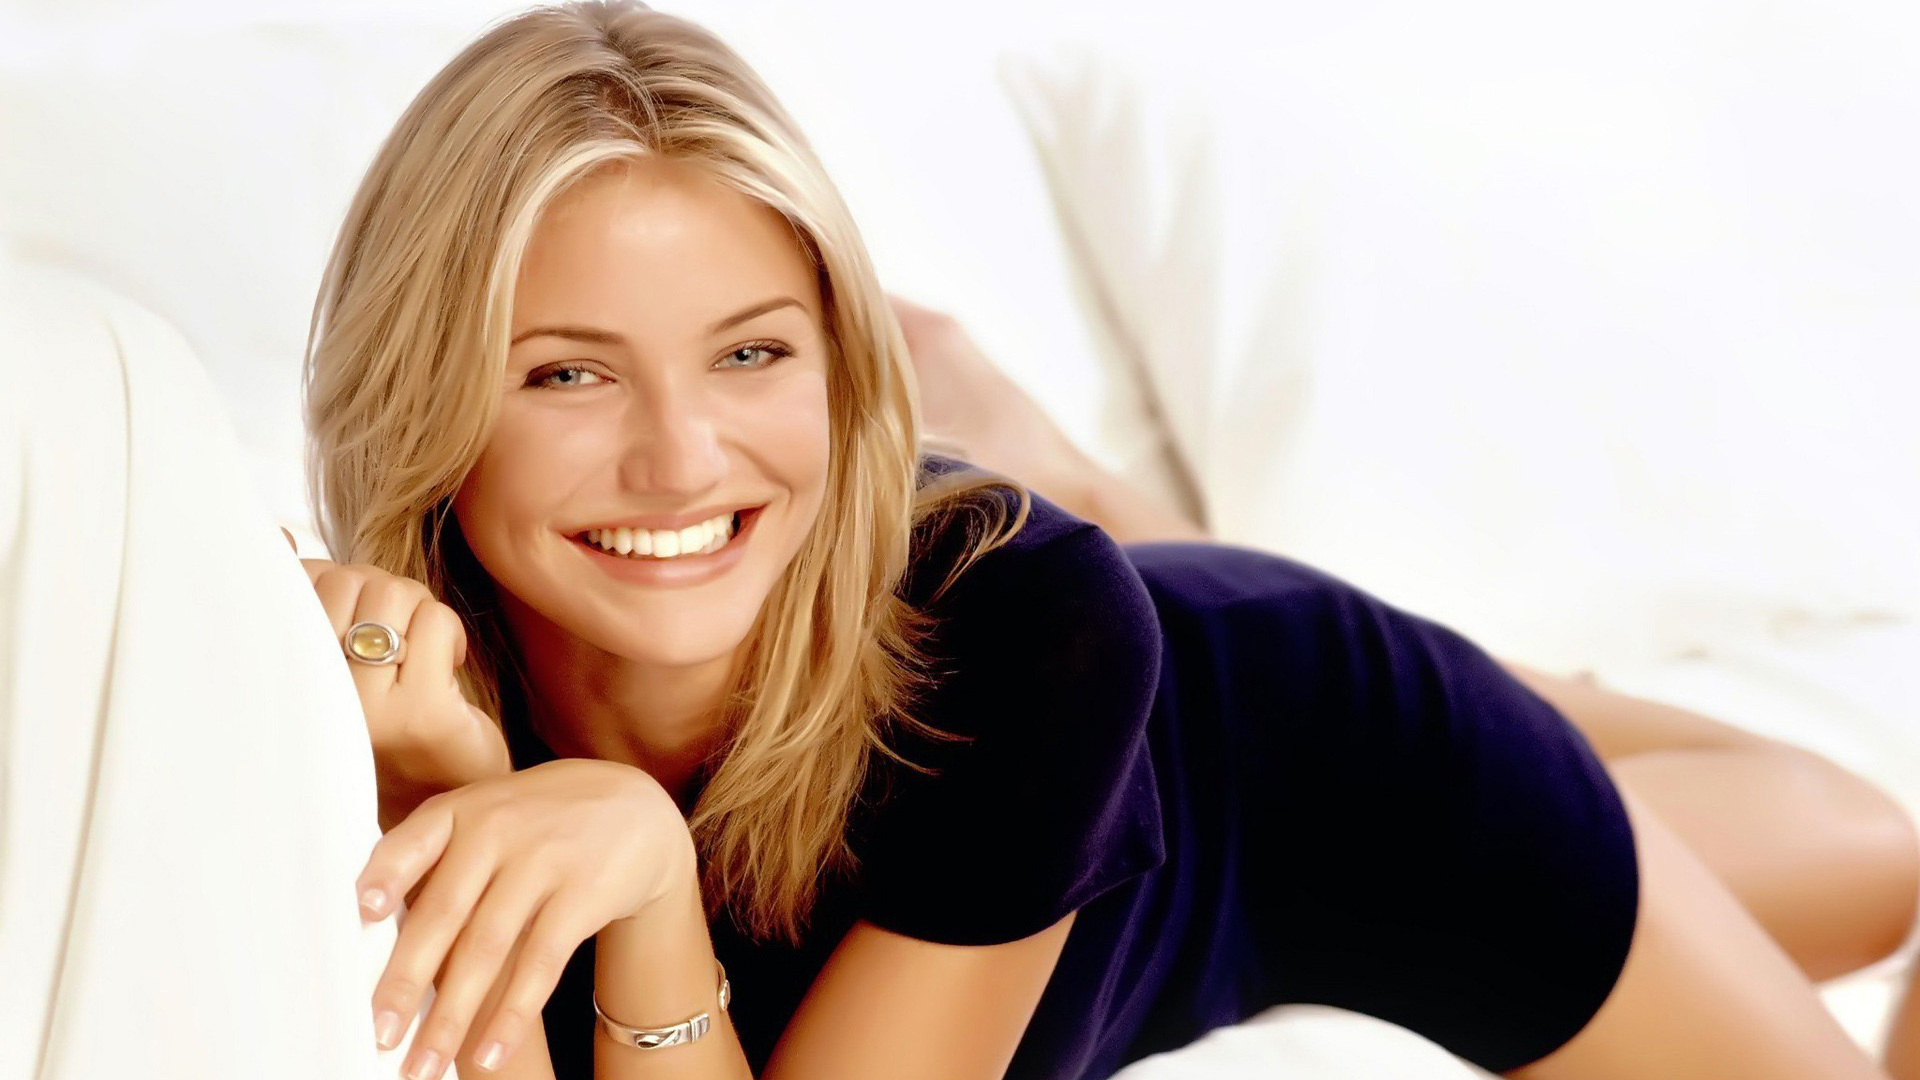 Cameron Diaz Wallpapers Archives   HDWallSourcecom 1920x1080